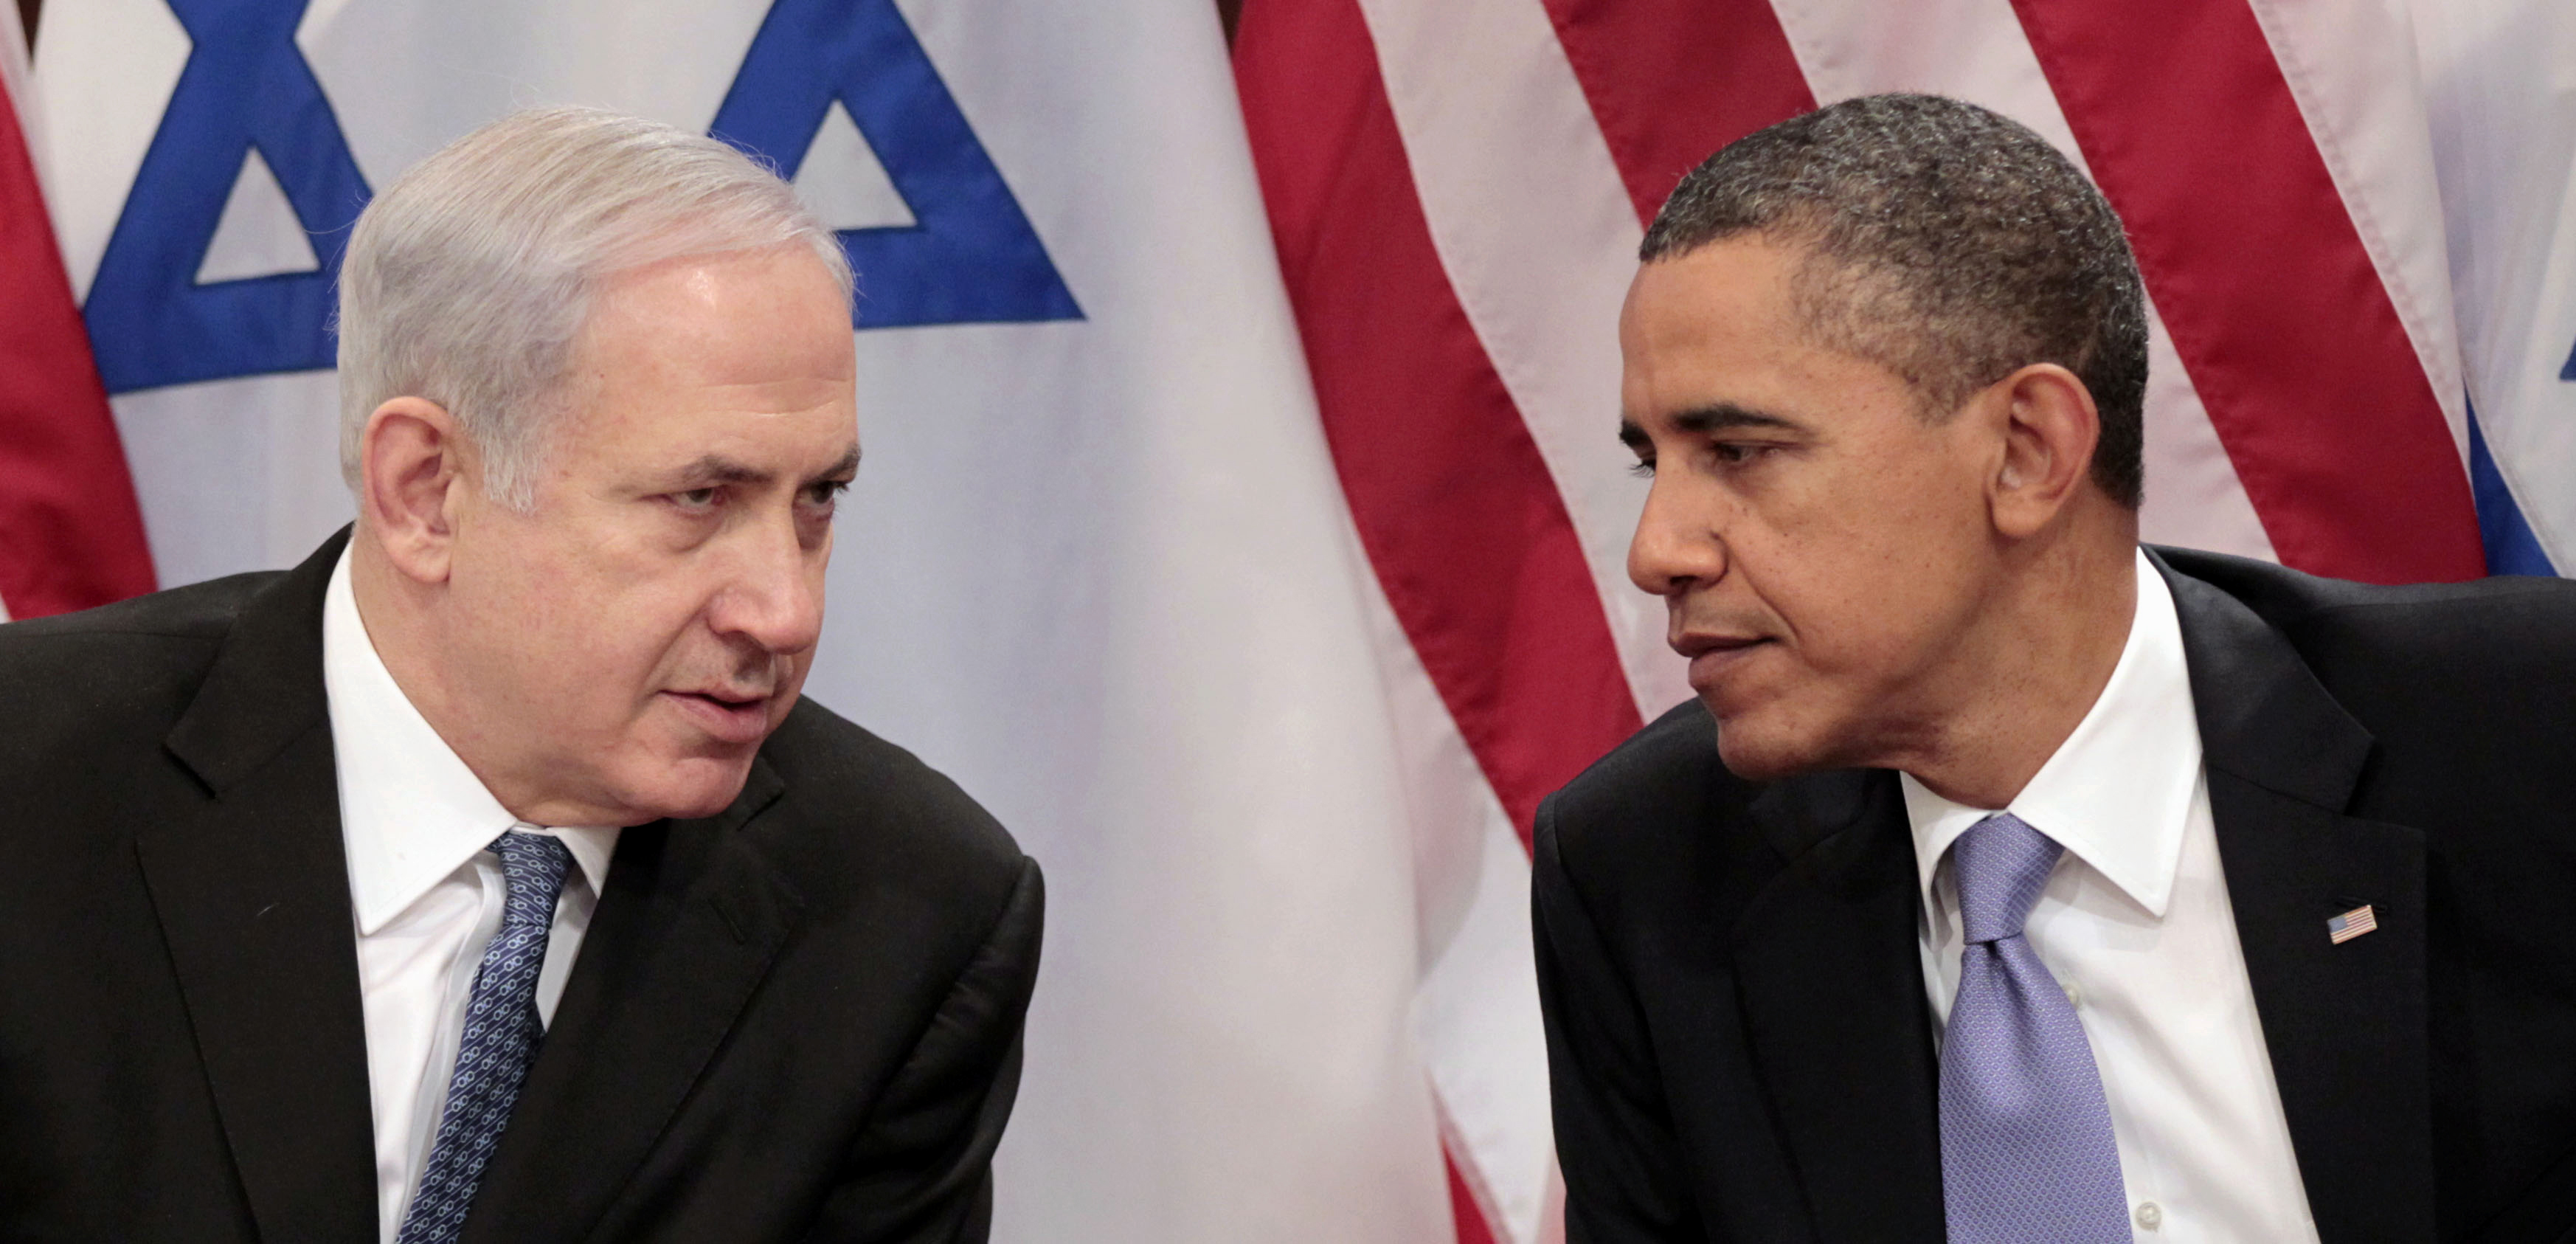 In this Sept. 21, 2011, file photo, President Barack Obama meets with Israeli Prime Minister Benjamin Netanyahu at the United Nations. (Pablo Martinez Monsivais/AP)